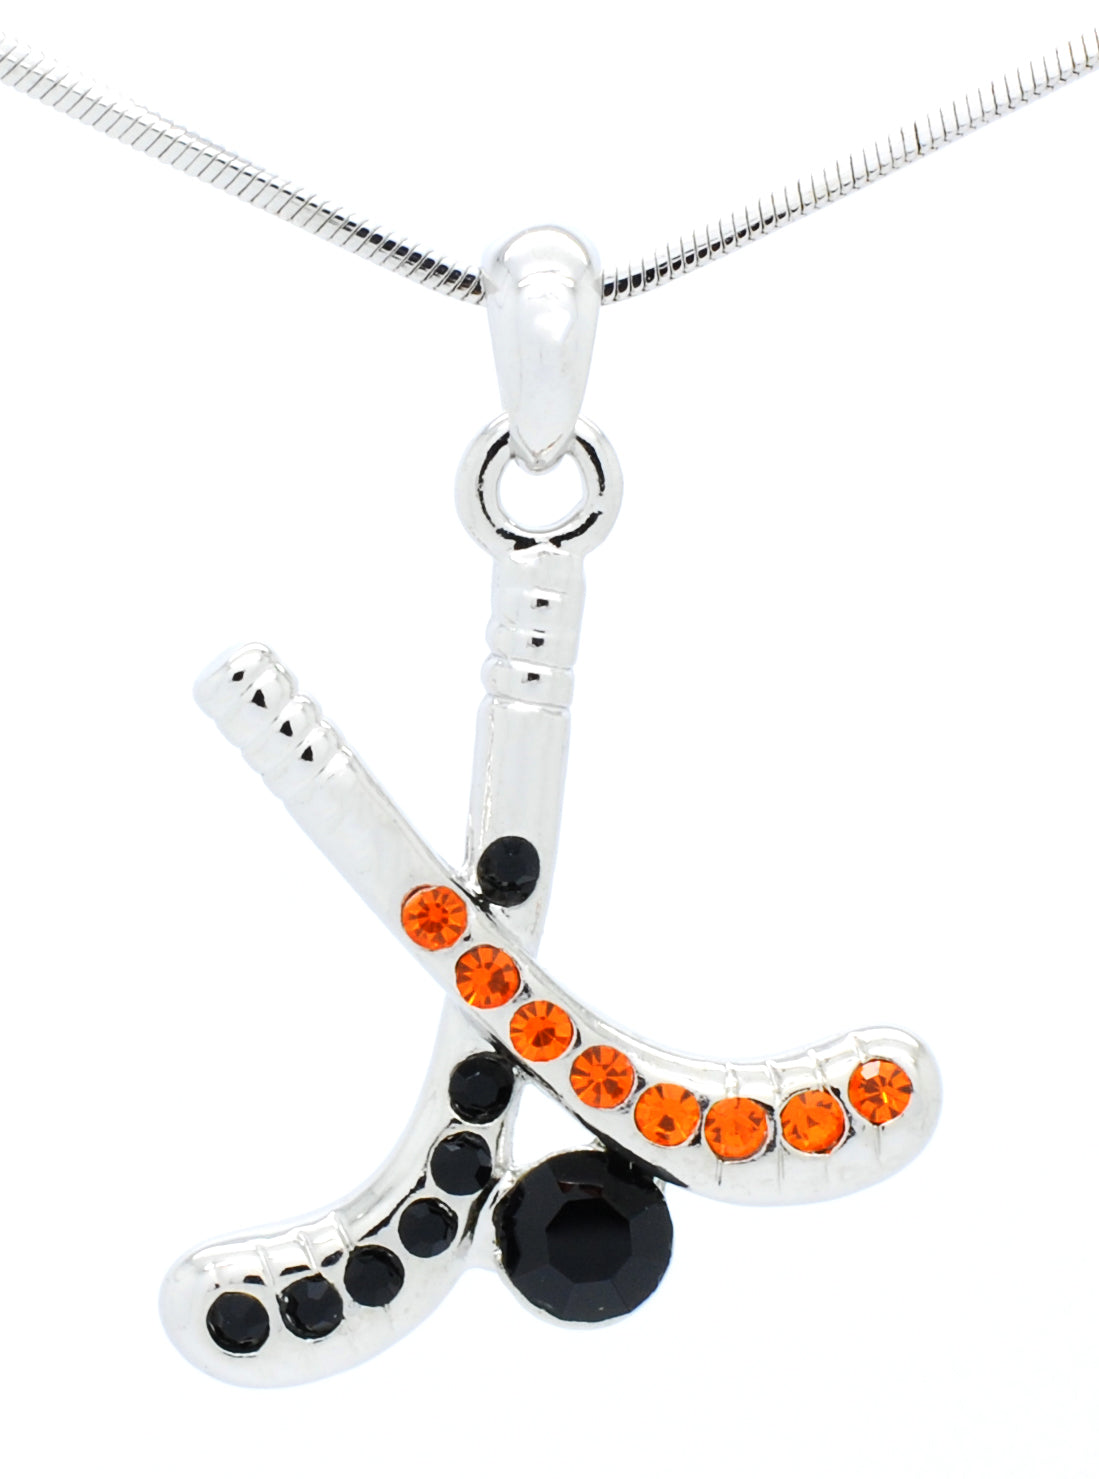 Hockey Stick Necklace - Orange/Black